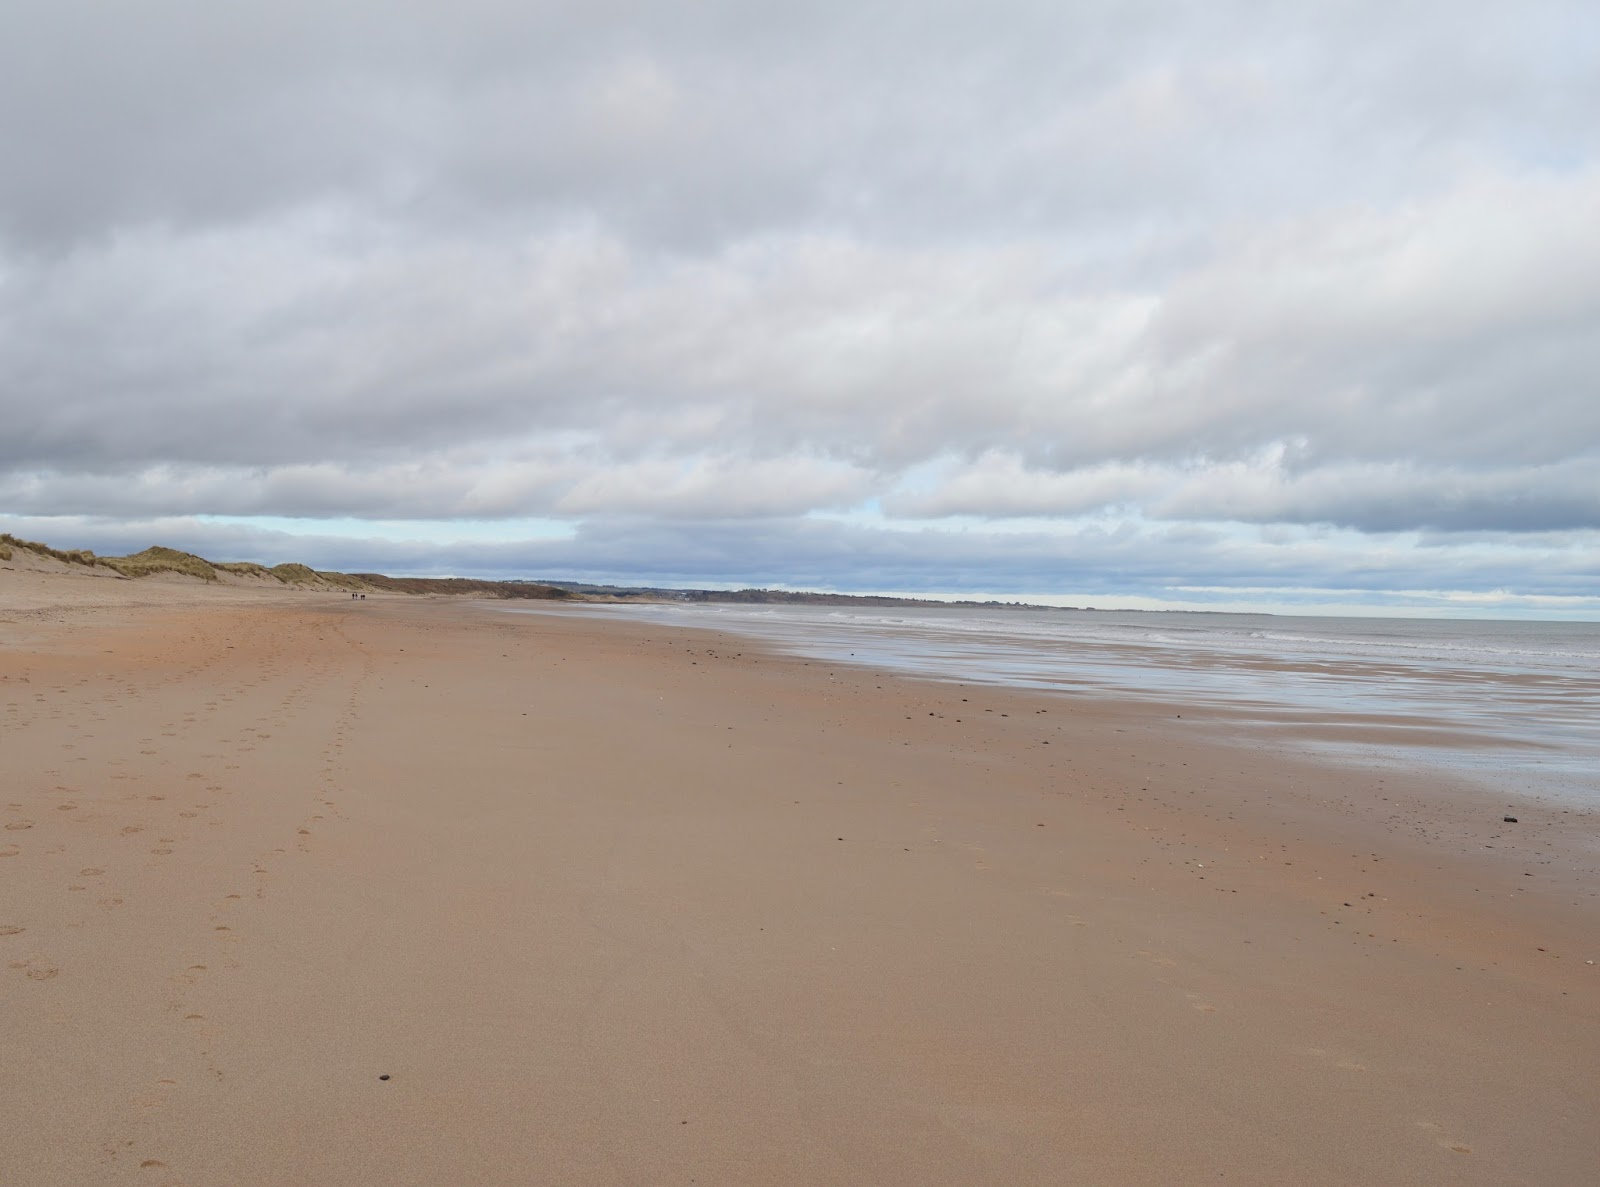 Warkworth beach, Northumberland